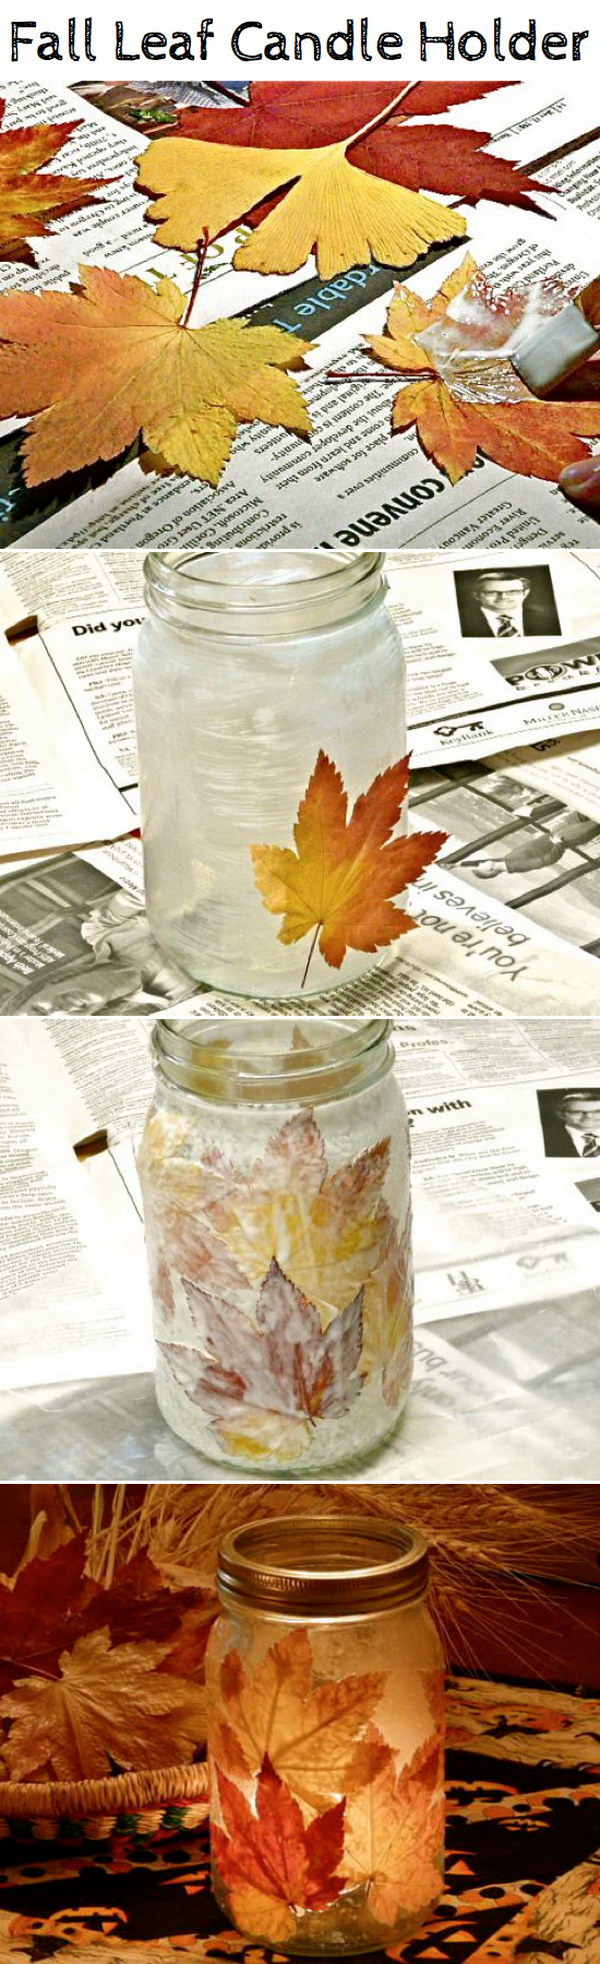 DIY Fall Leaf Candle Holder.